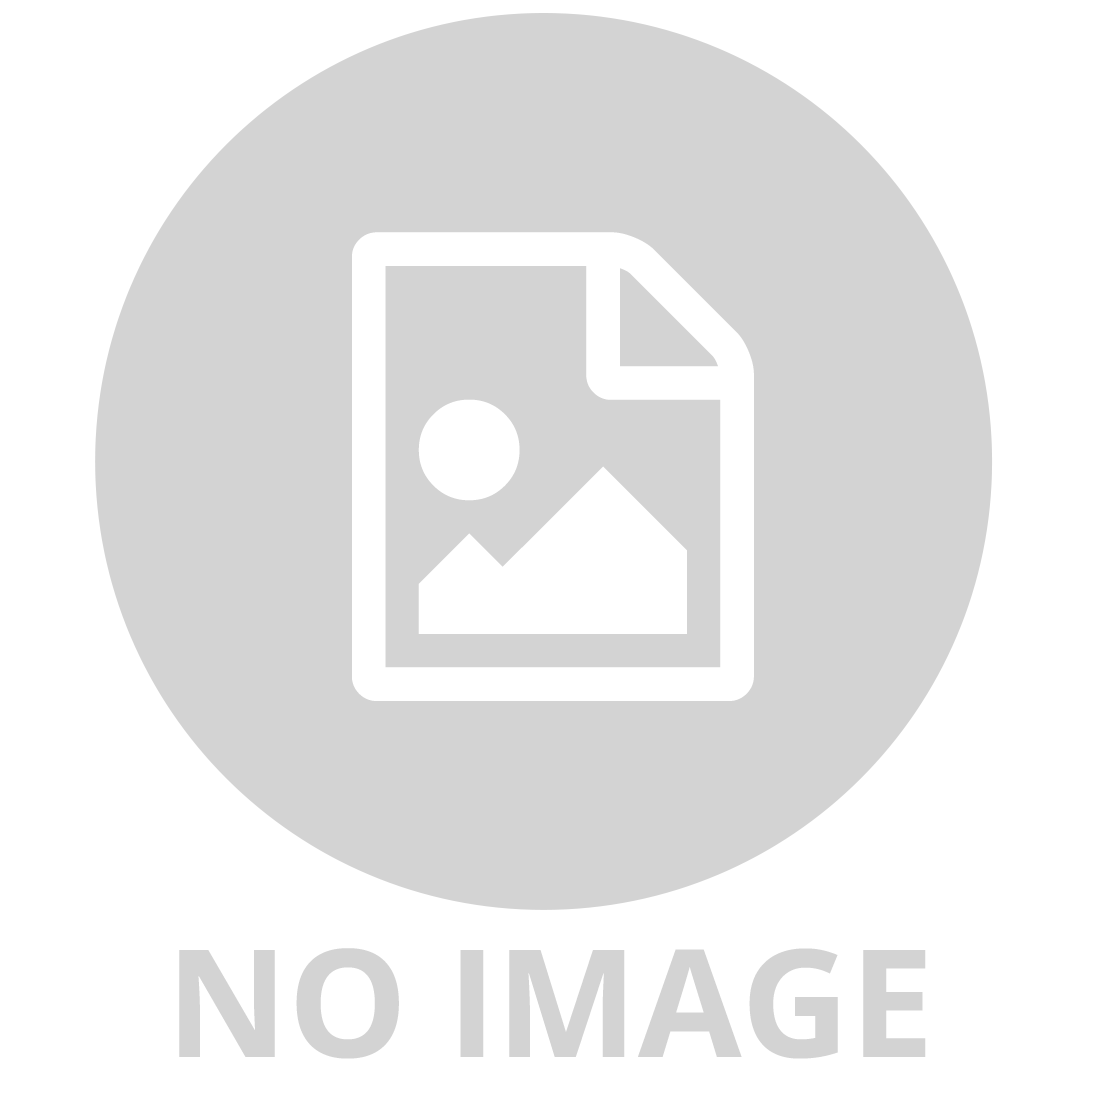 ATLAS HO LAYOUTS FOR EVERY SPACE